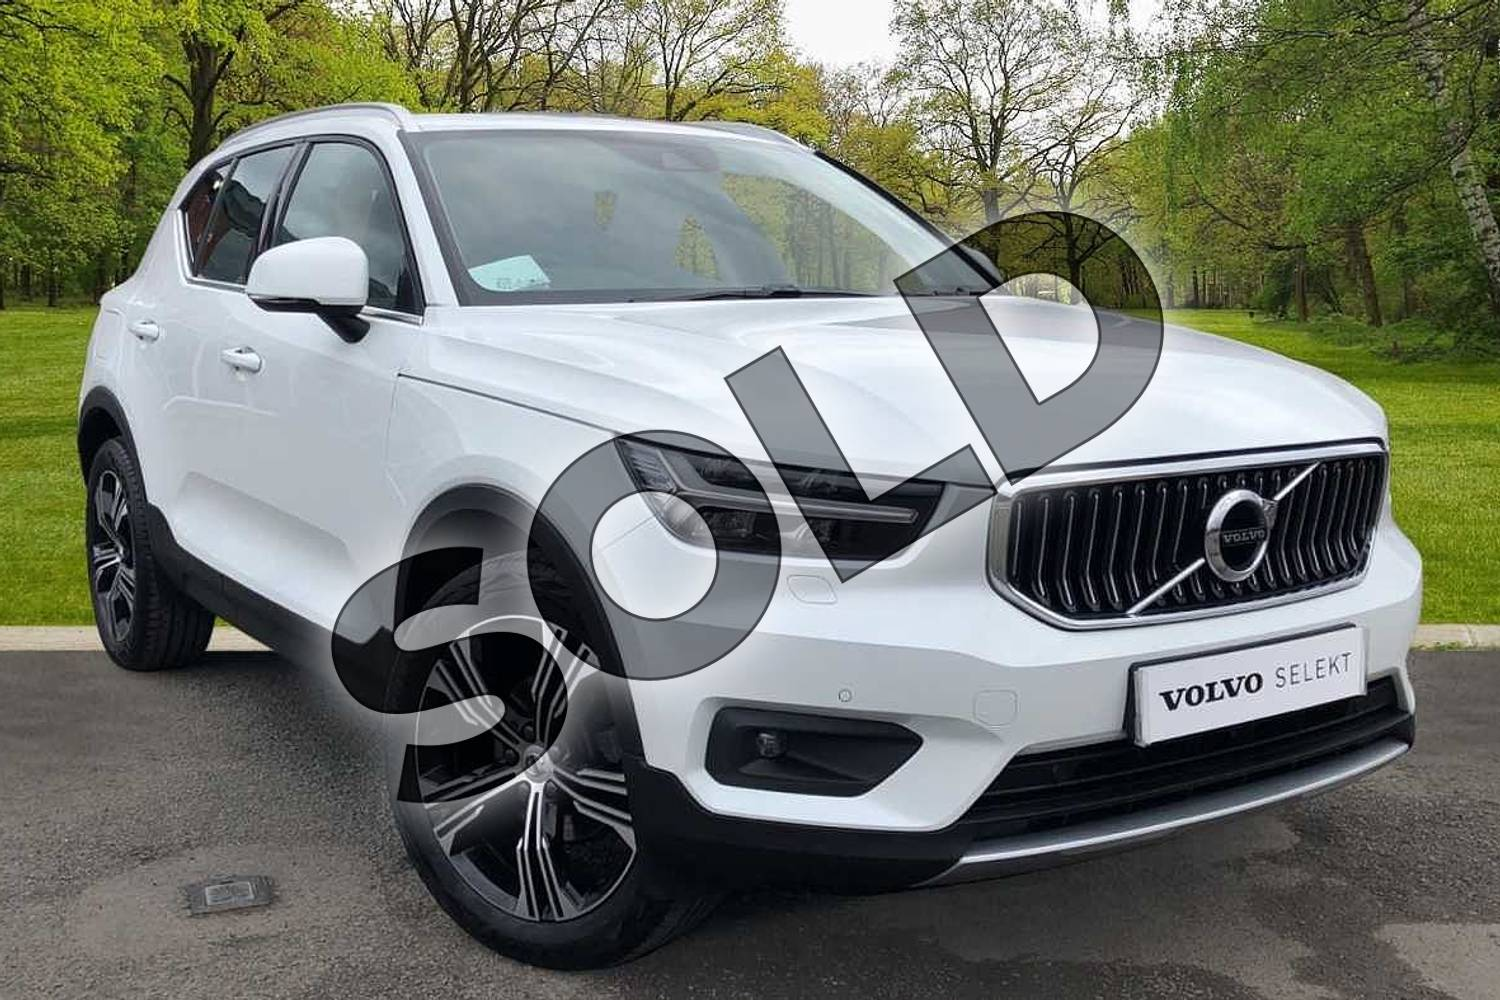 2020 Volvo XC40 Estate 1.5 T3 (163) Inscription Pro 5dr in Crystal White at Listers Volvo Worcester